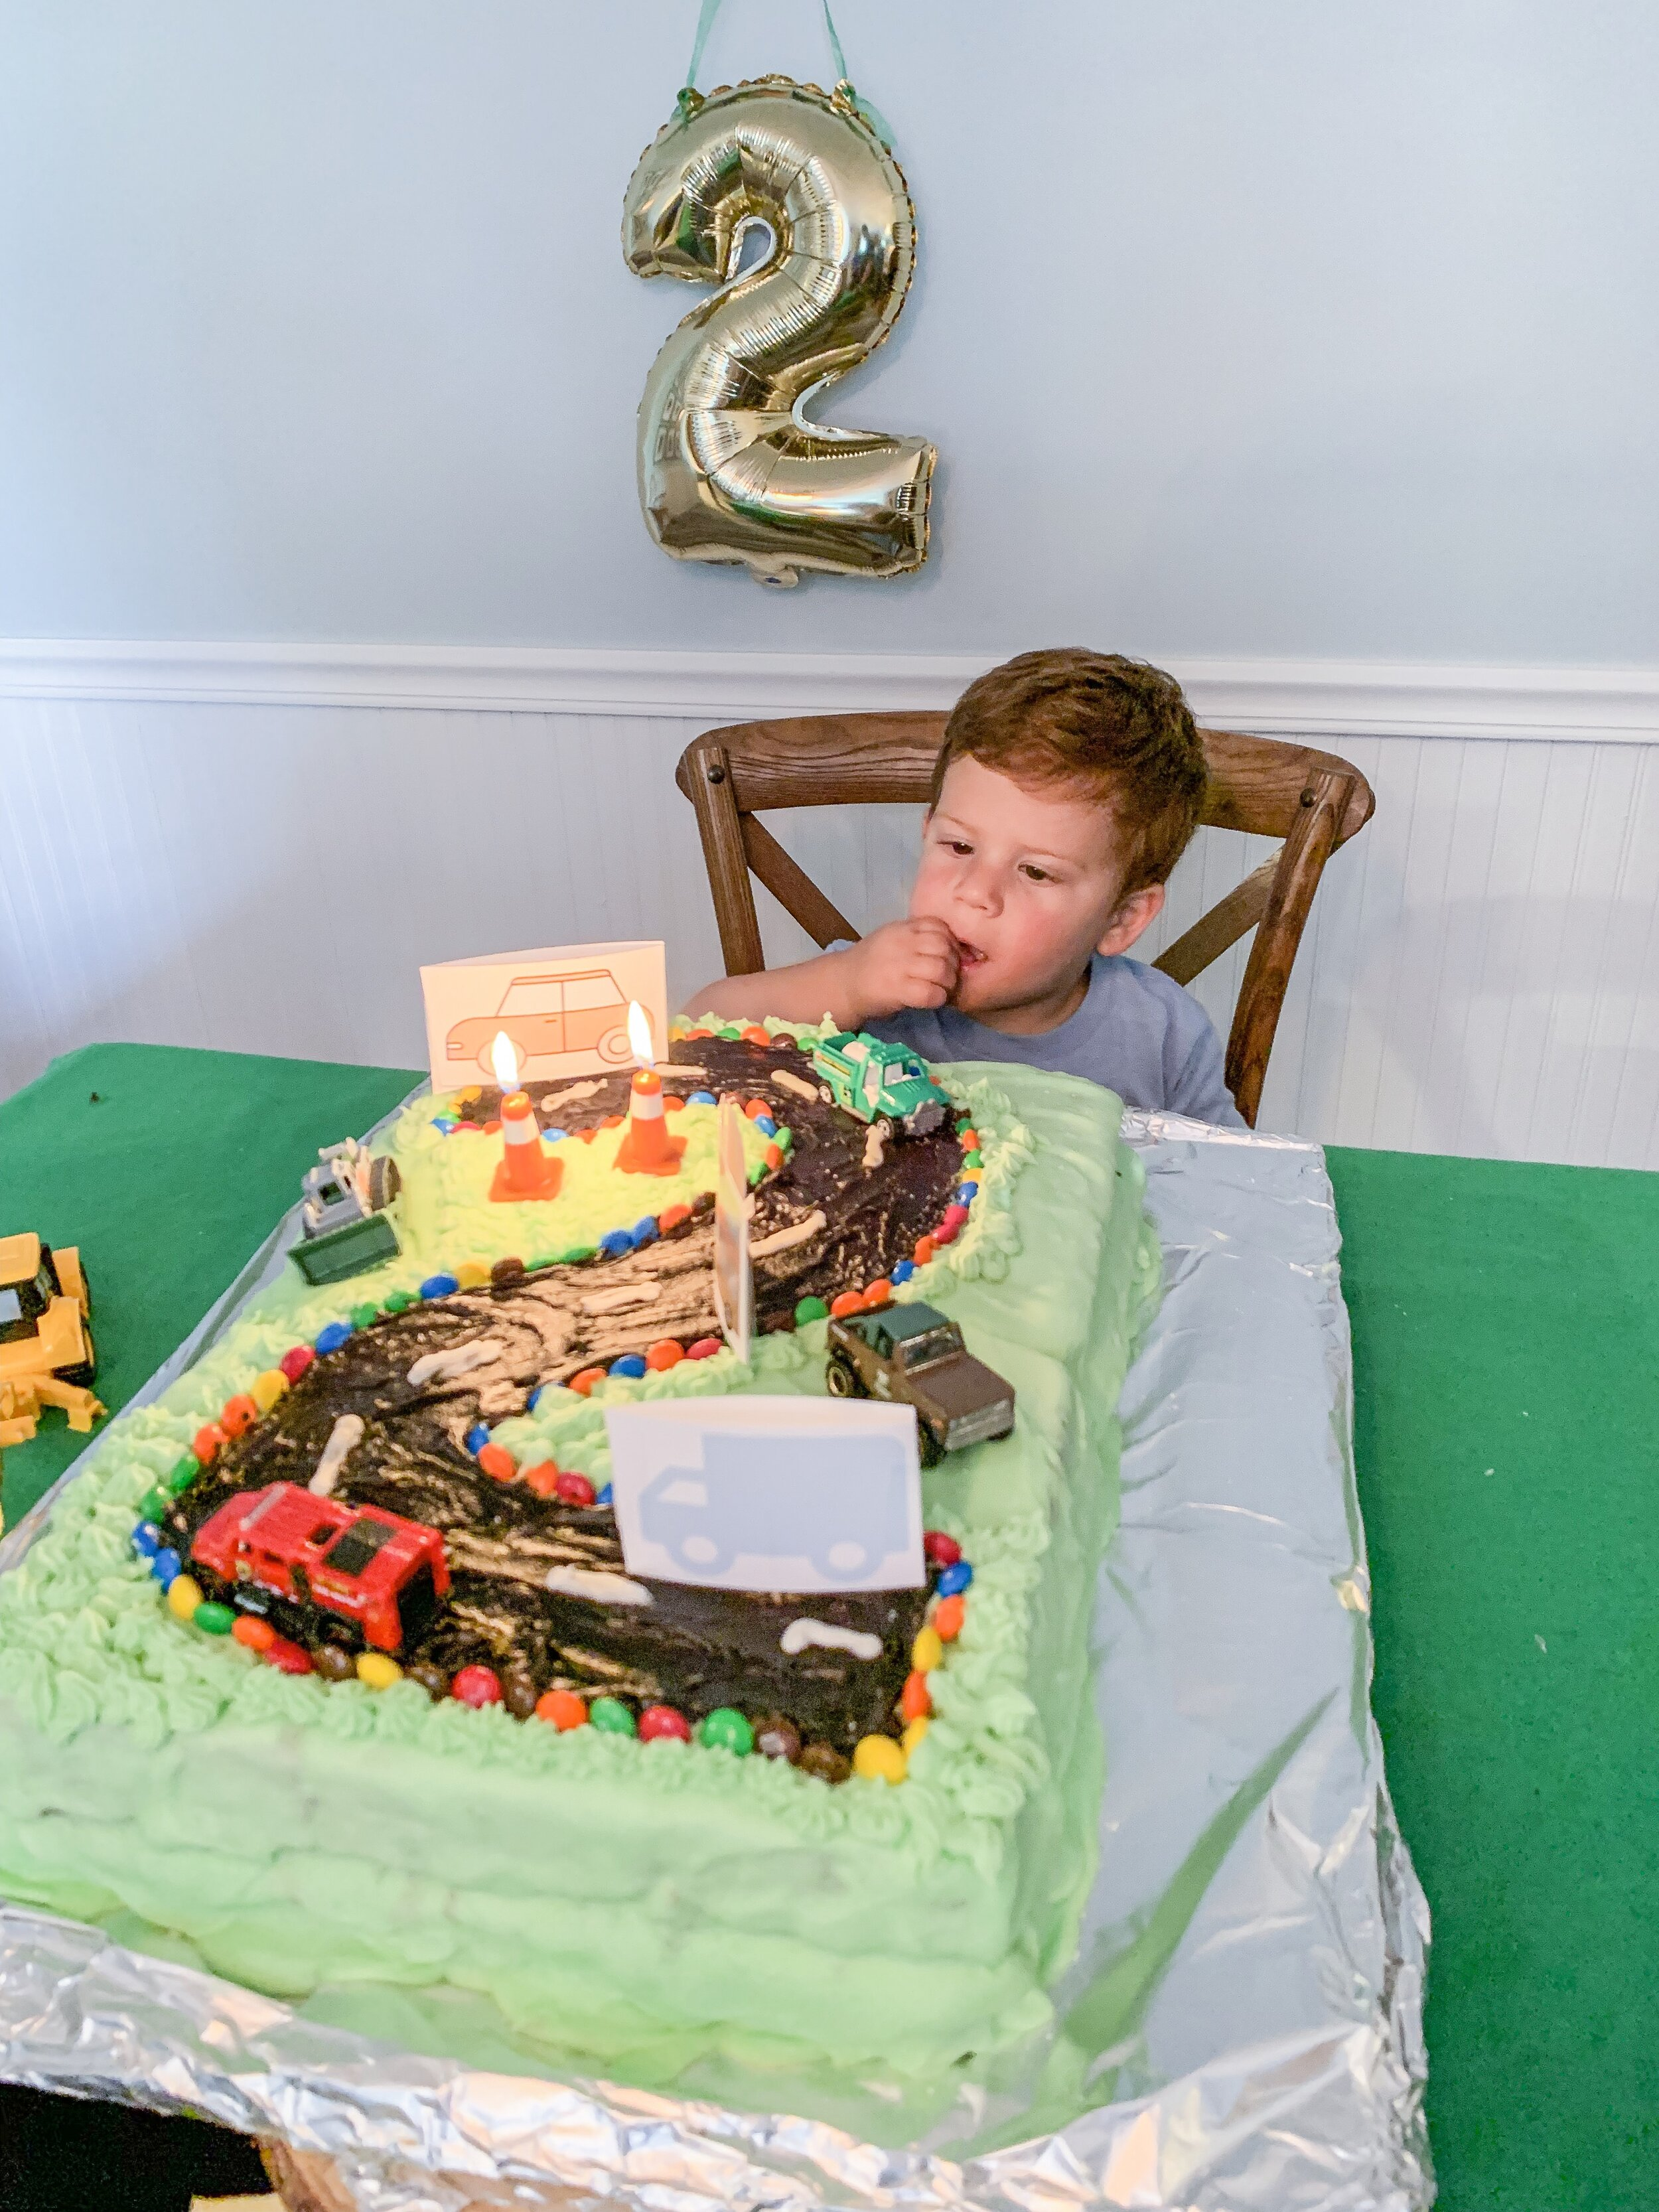 Dominic with his cake